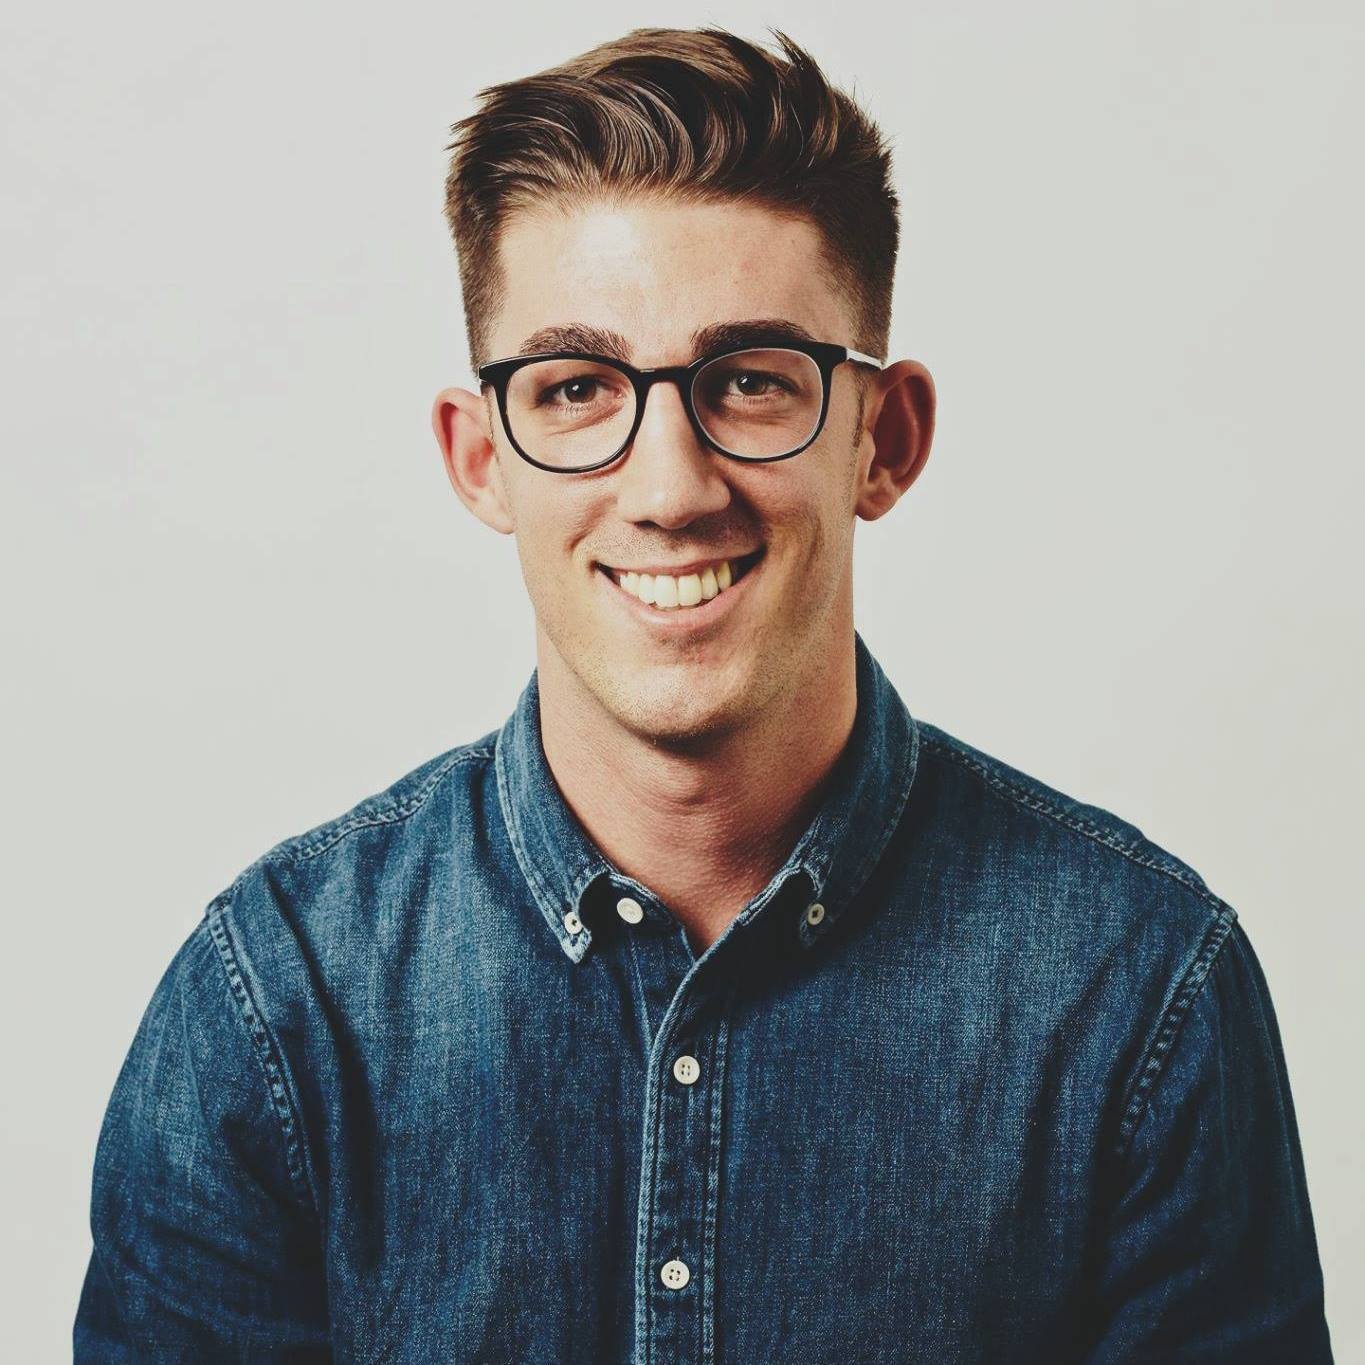 Jordan Furlong  USC 2017  Jordan is a product manager at Jumpstart in San Francisco and I'm particularly passionate about scalable products within education, music, health, and professional development.